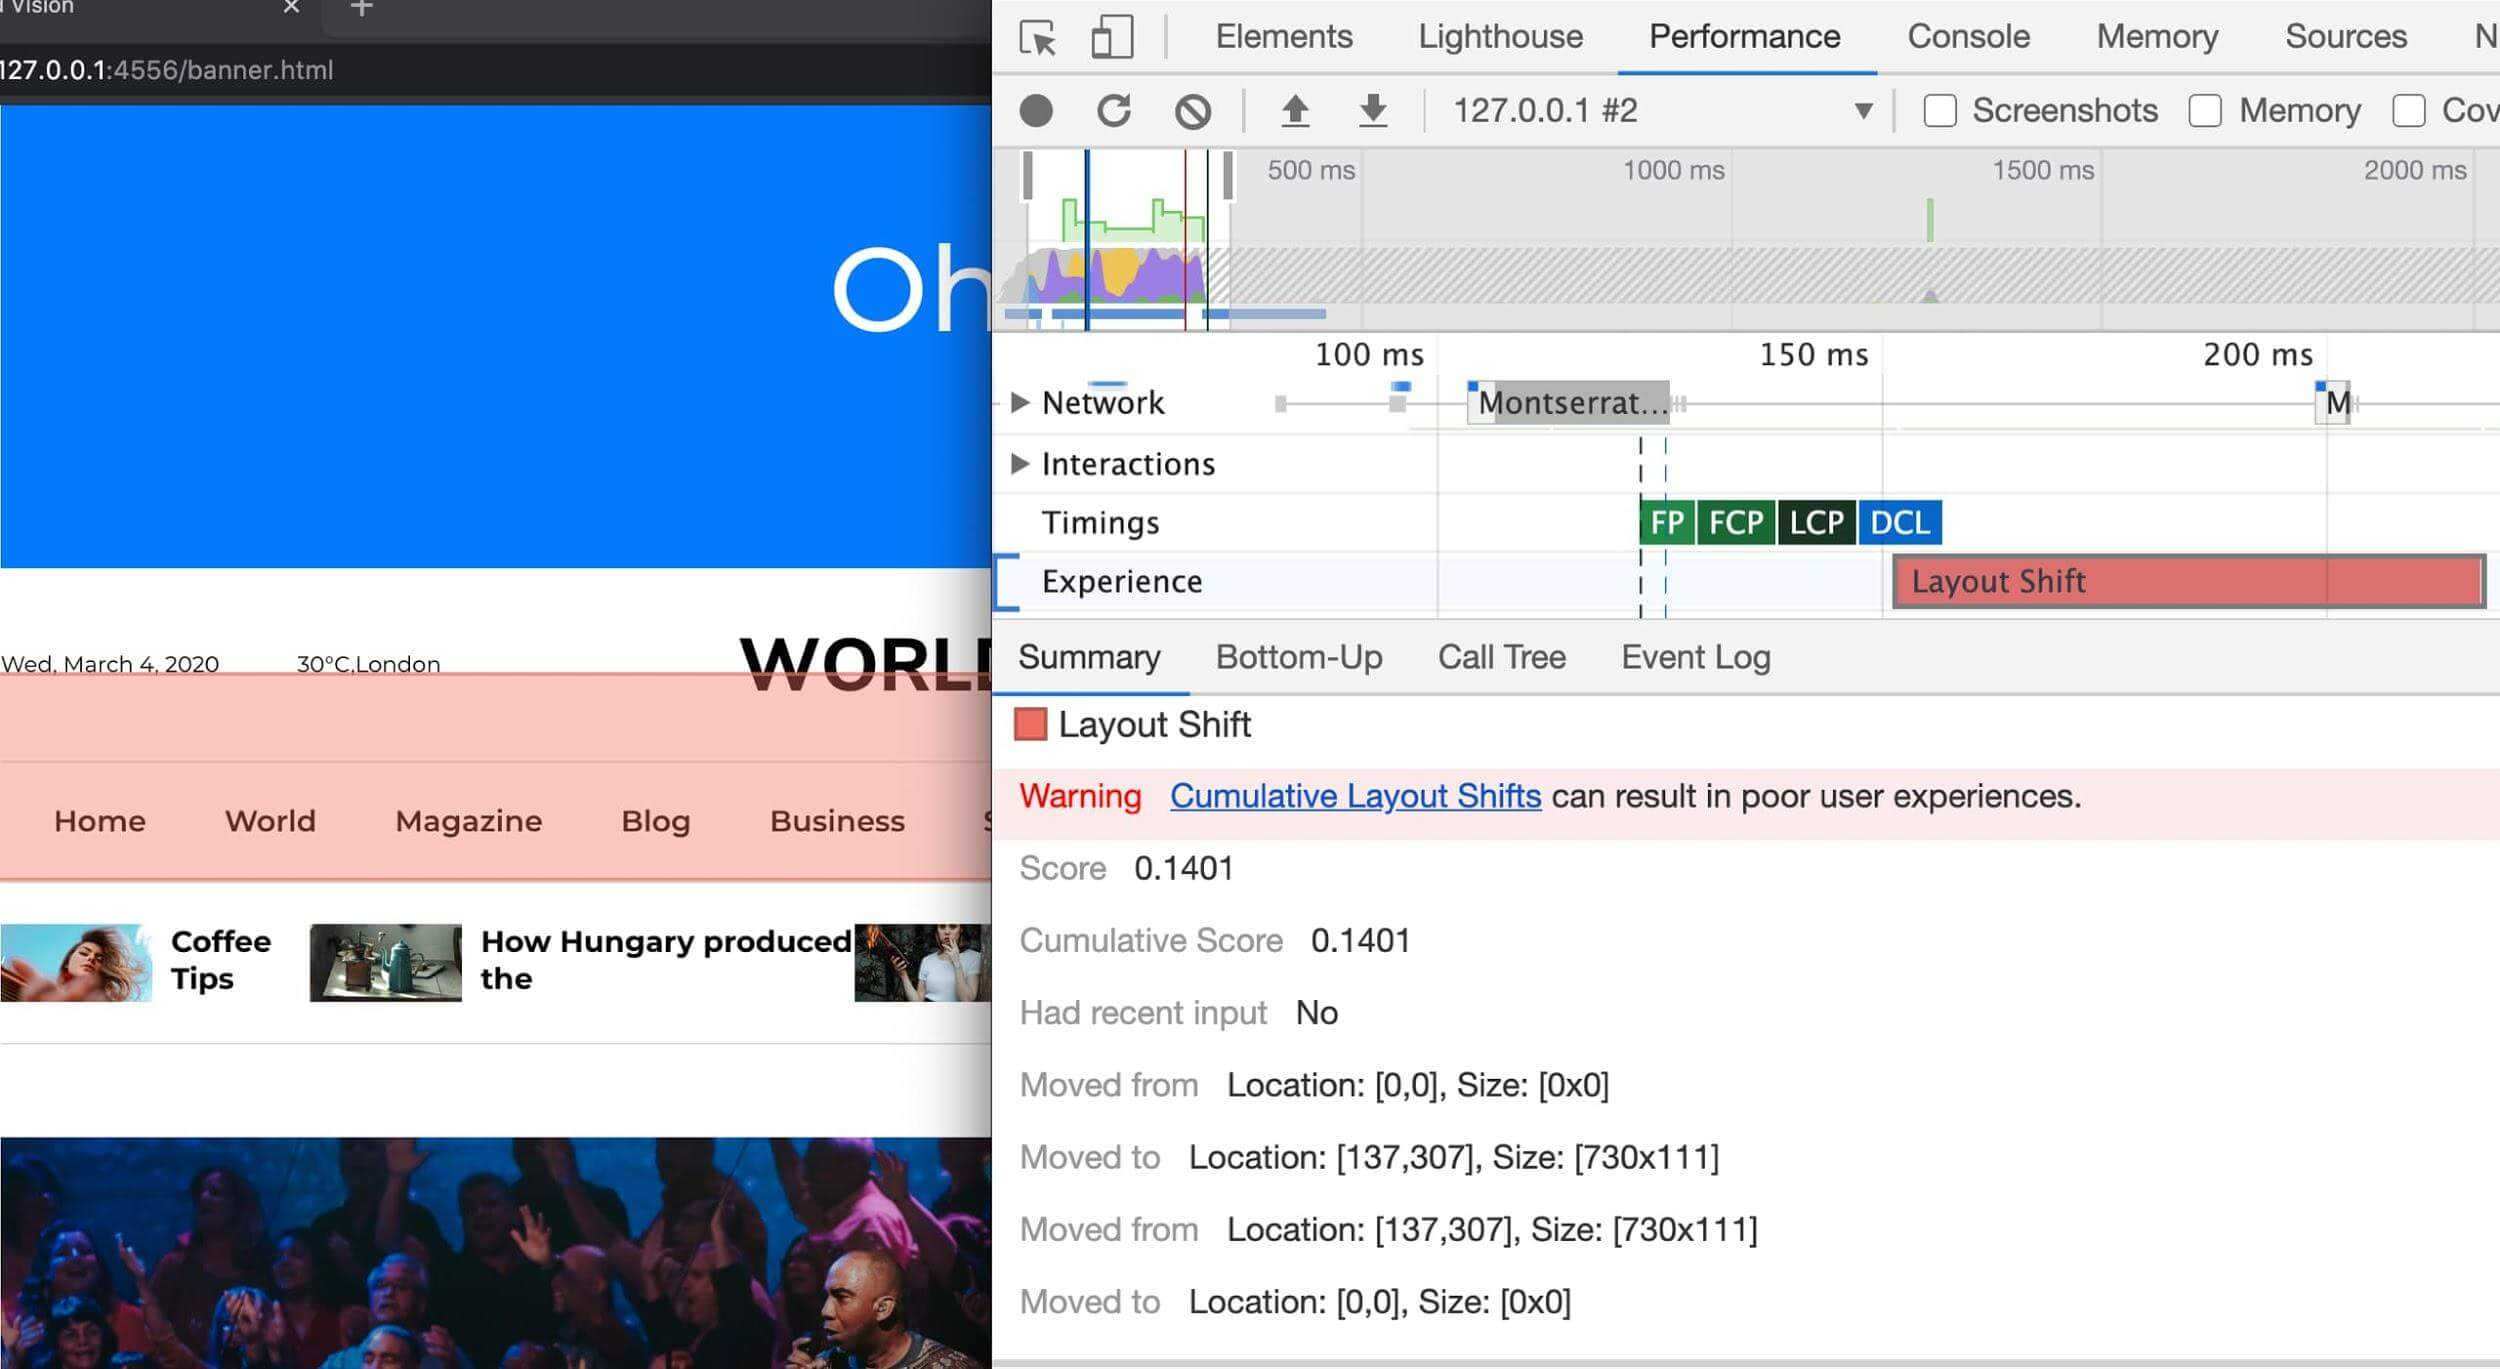 Layout Shift records being displayed in the Chrome DevTools performance panel when expanding the Experience section